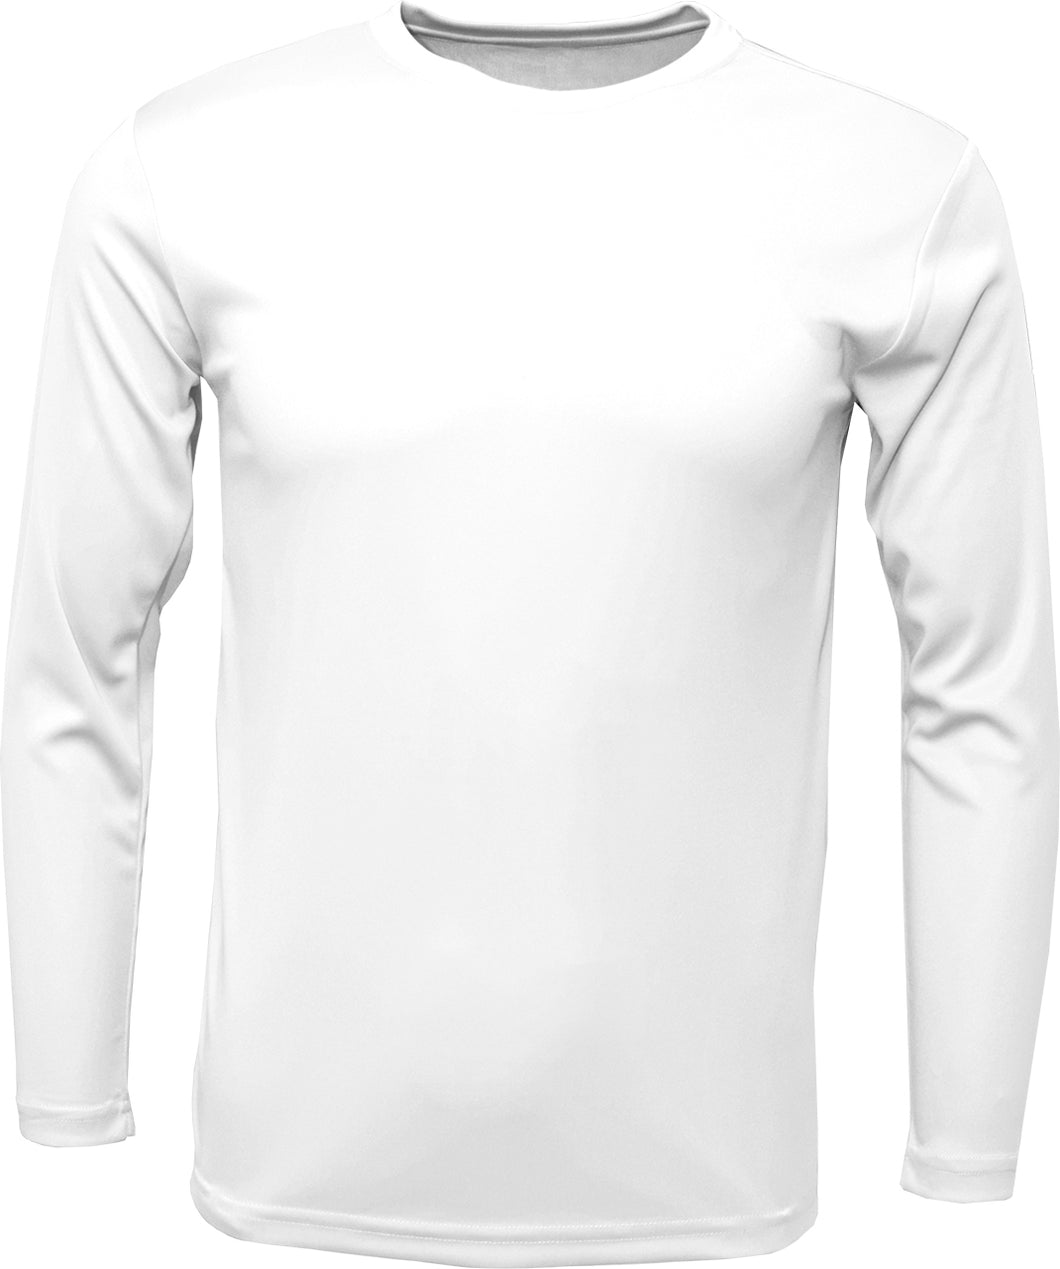 Shooting Shirt (Required)